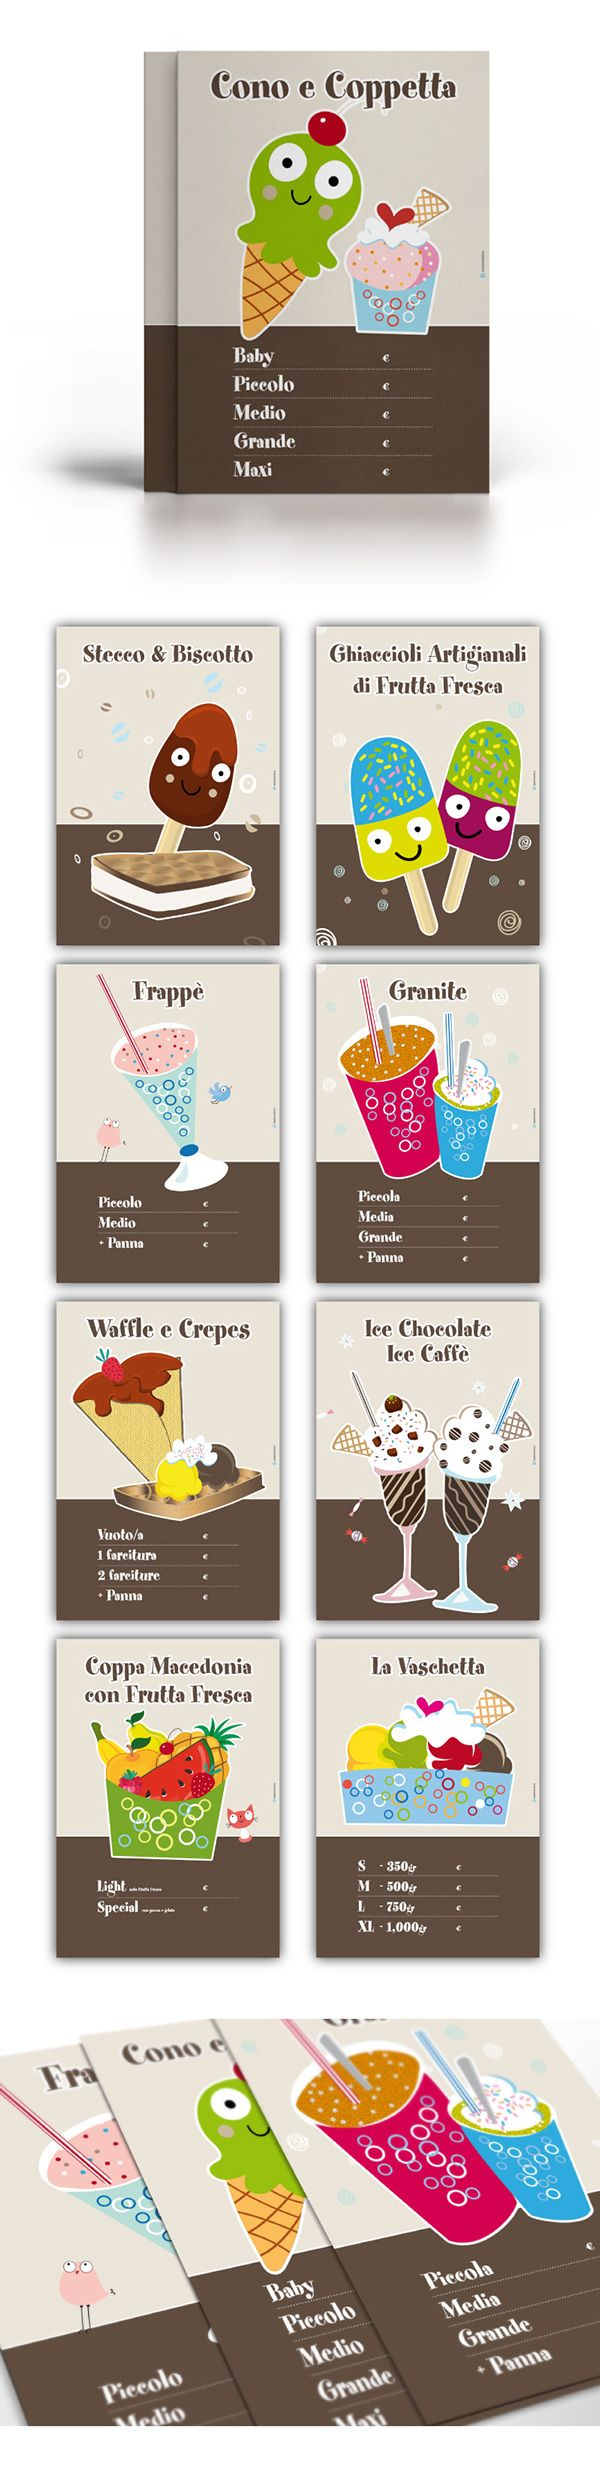 PETER PANNA / A FABLE OF ICE CREAM on Behance